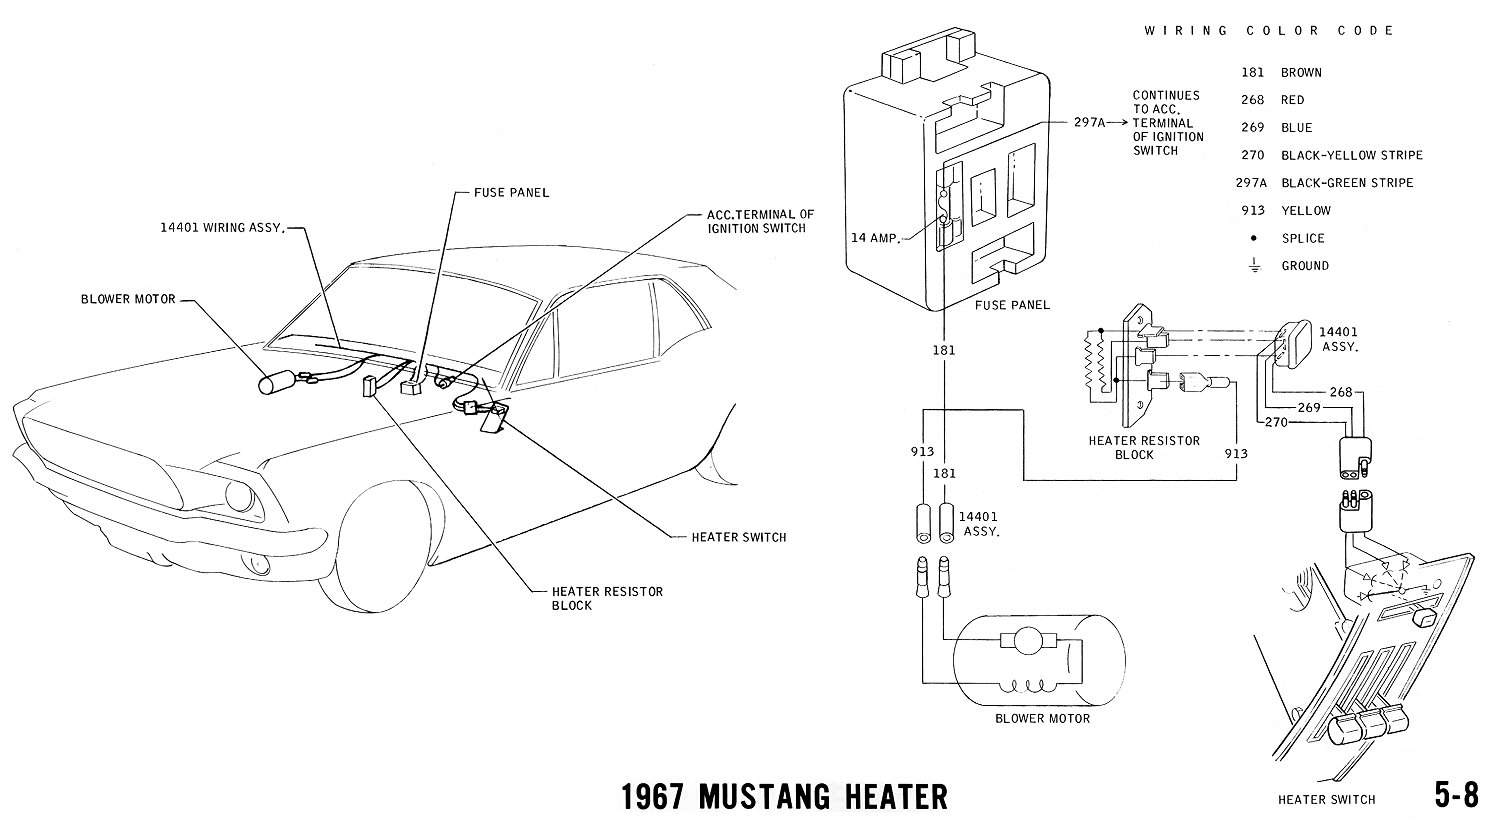 1967 Mustang Wiring And Vacuum Diagrams Average Joe Restoration Car Heater Diagram Pictorial Schematic